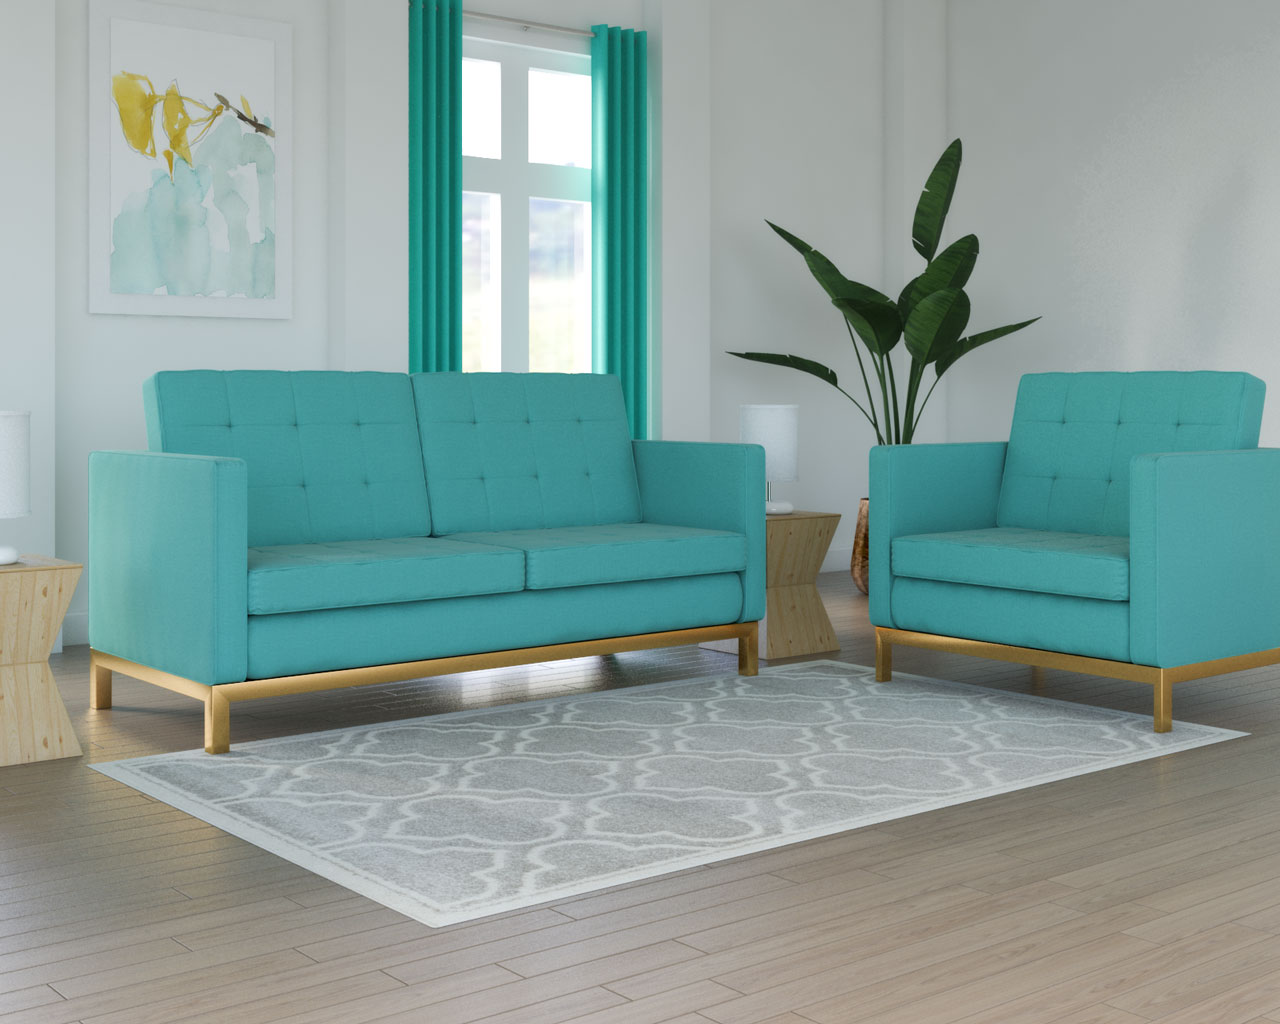 Cream rug with teal couch